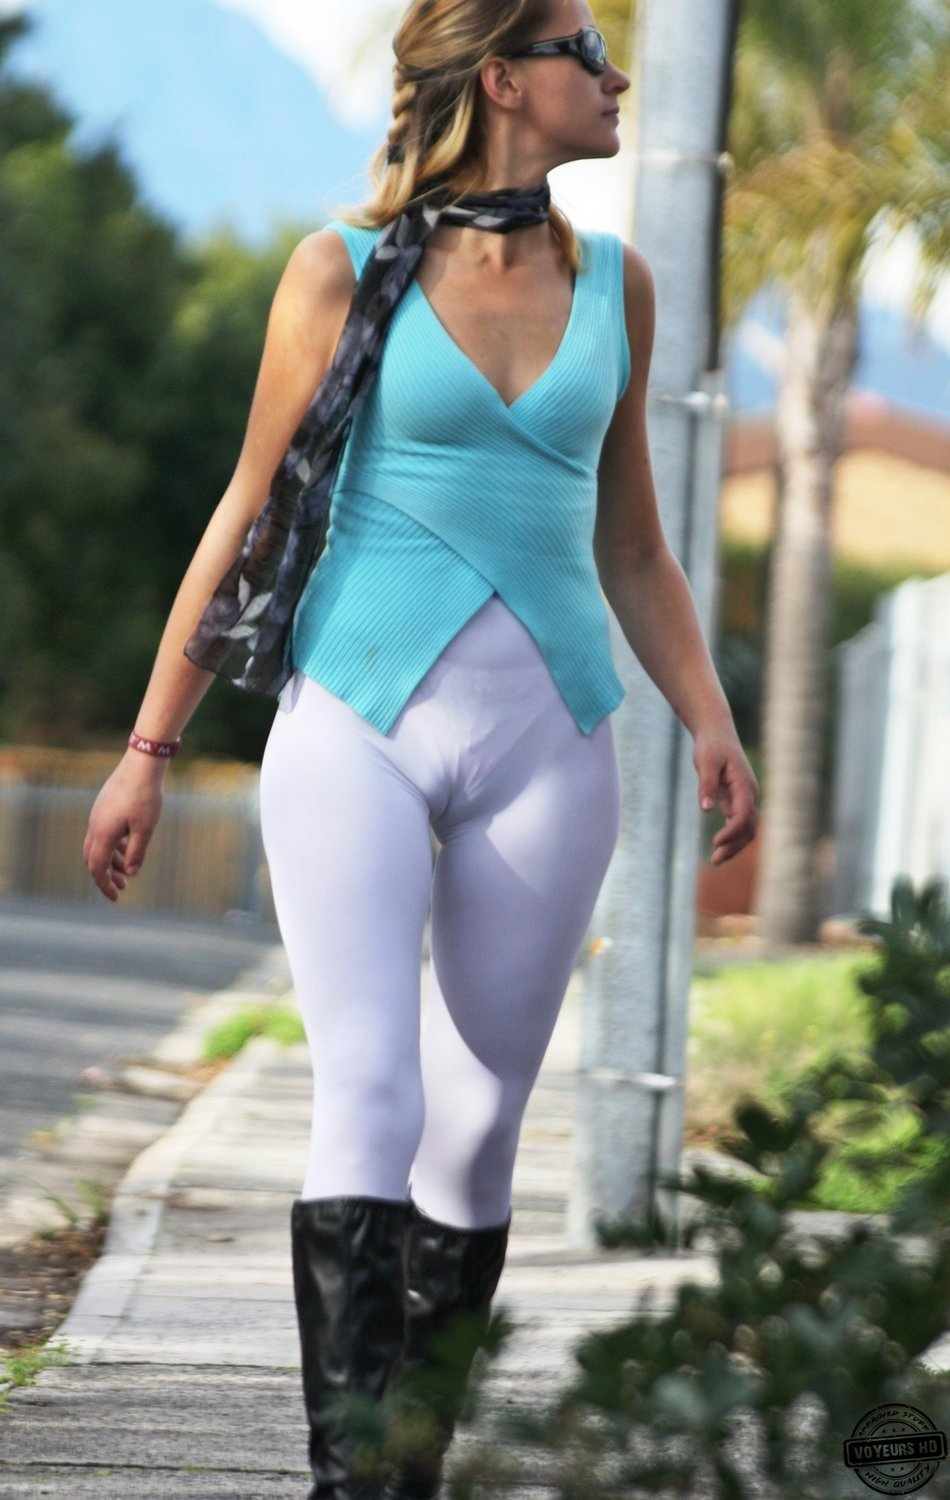 Ametuer mature camel toe my. Please